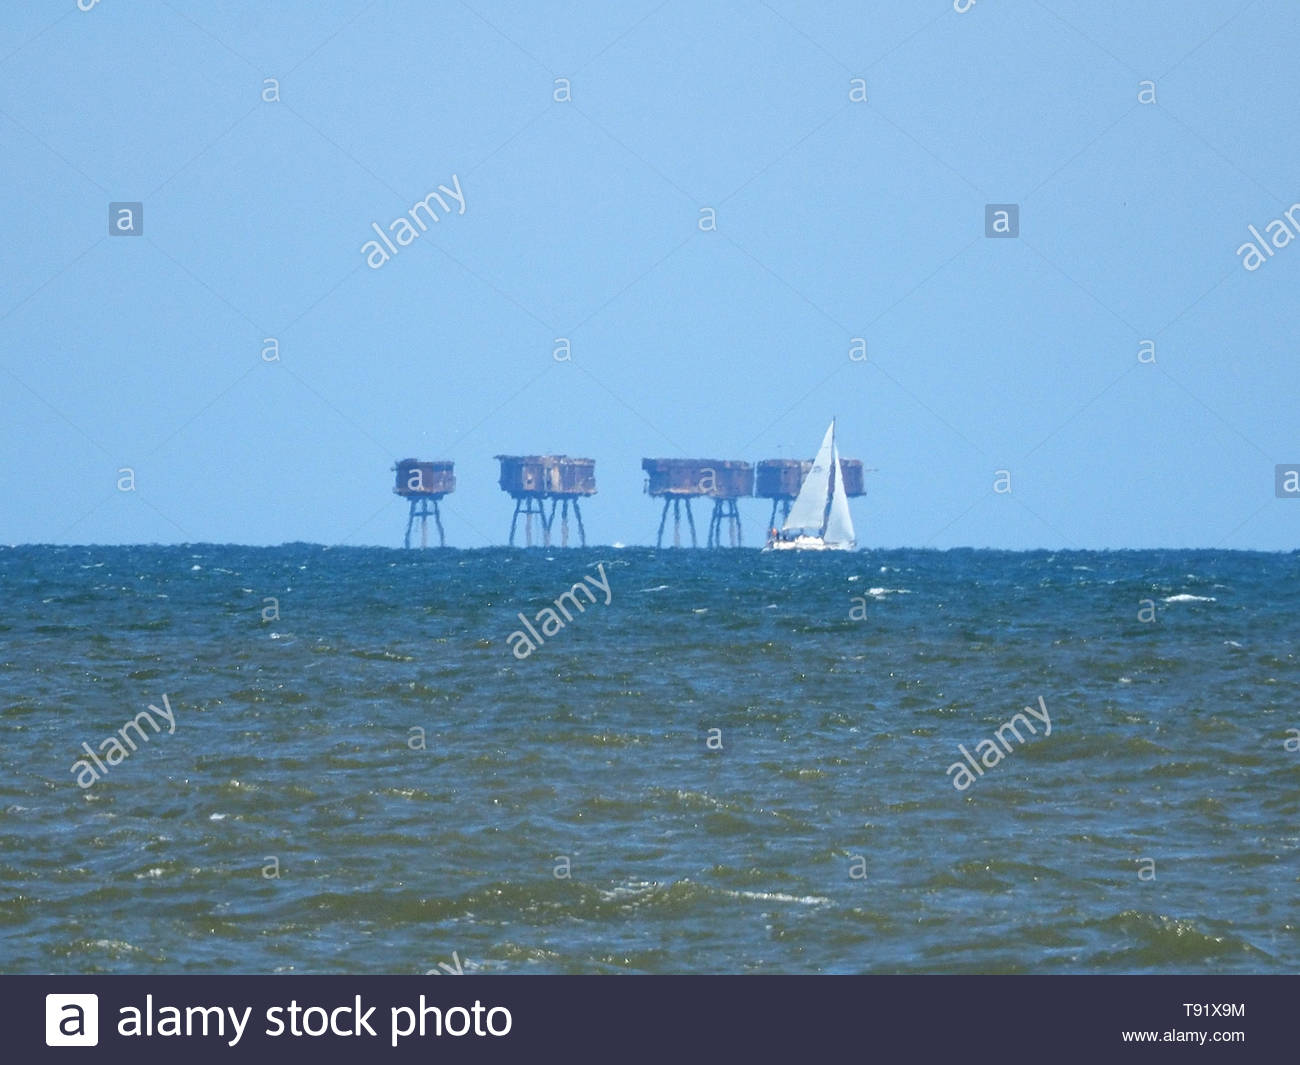 Leysdown, Kent, UK. 16th May, 2019. UK Weather: a sunny and warm afternoon in Leysdown, Kent. A sailing yacht sails past the Red Sands towers which are around 5 miles offshore. Credit: James Bell/Alamy Live News - Stock Image